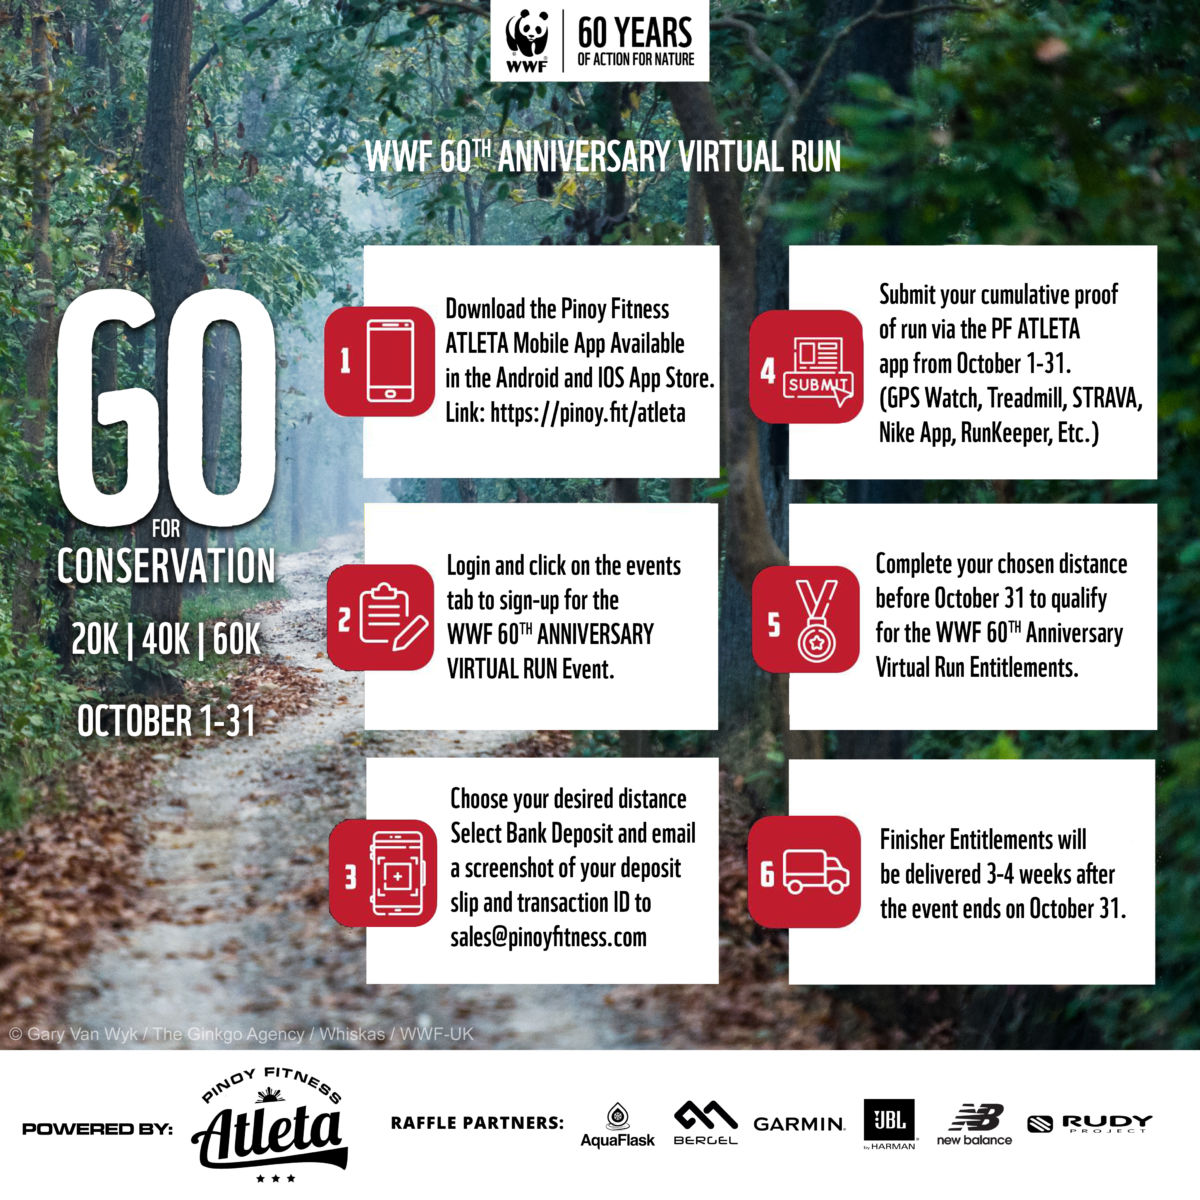 WWF-Philippines teams up with Pinoy Fitness Atleta for a virtual run to promote environmental conservation